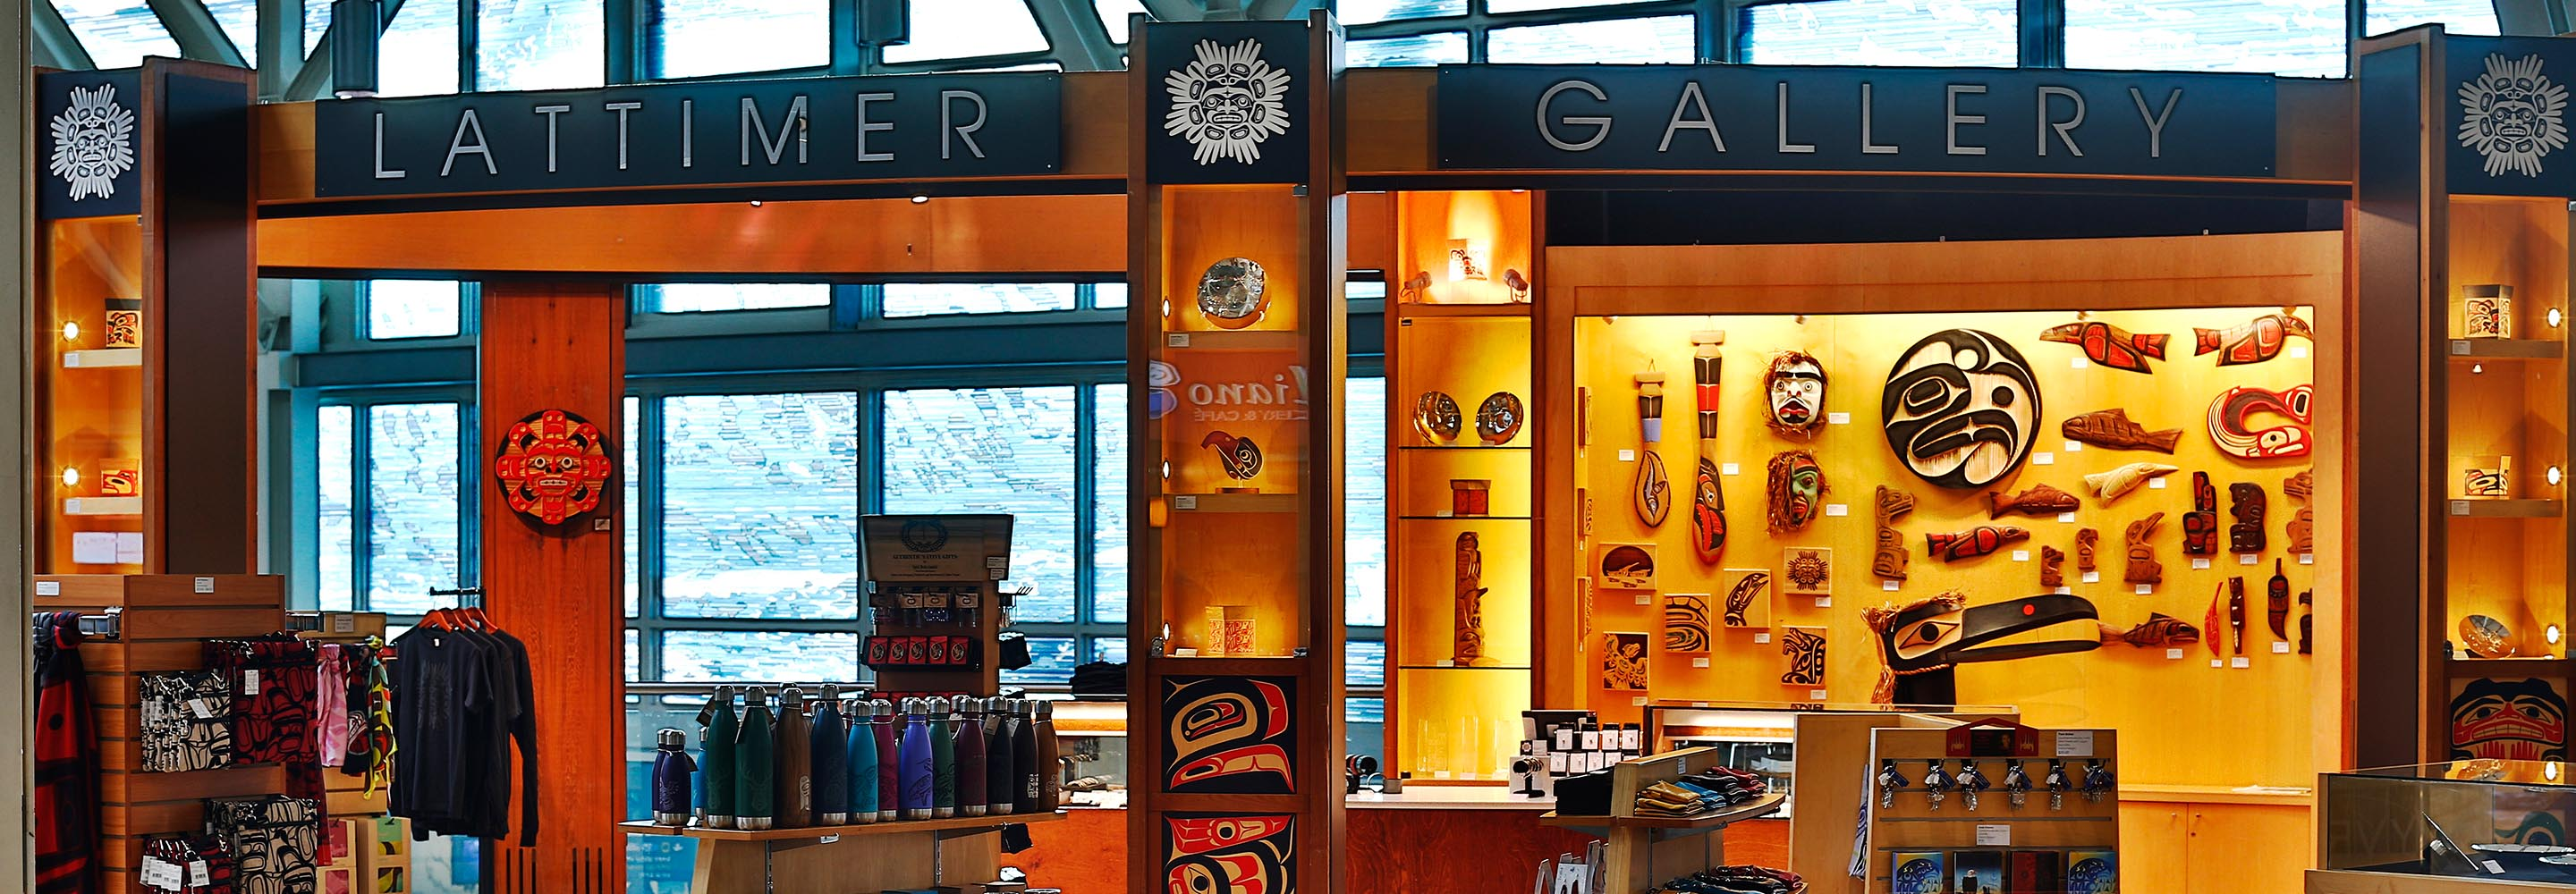 Lattimer Gallery gifts and souvenirs